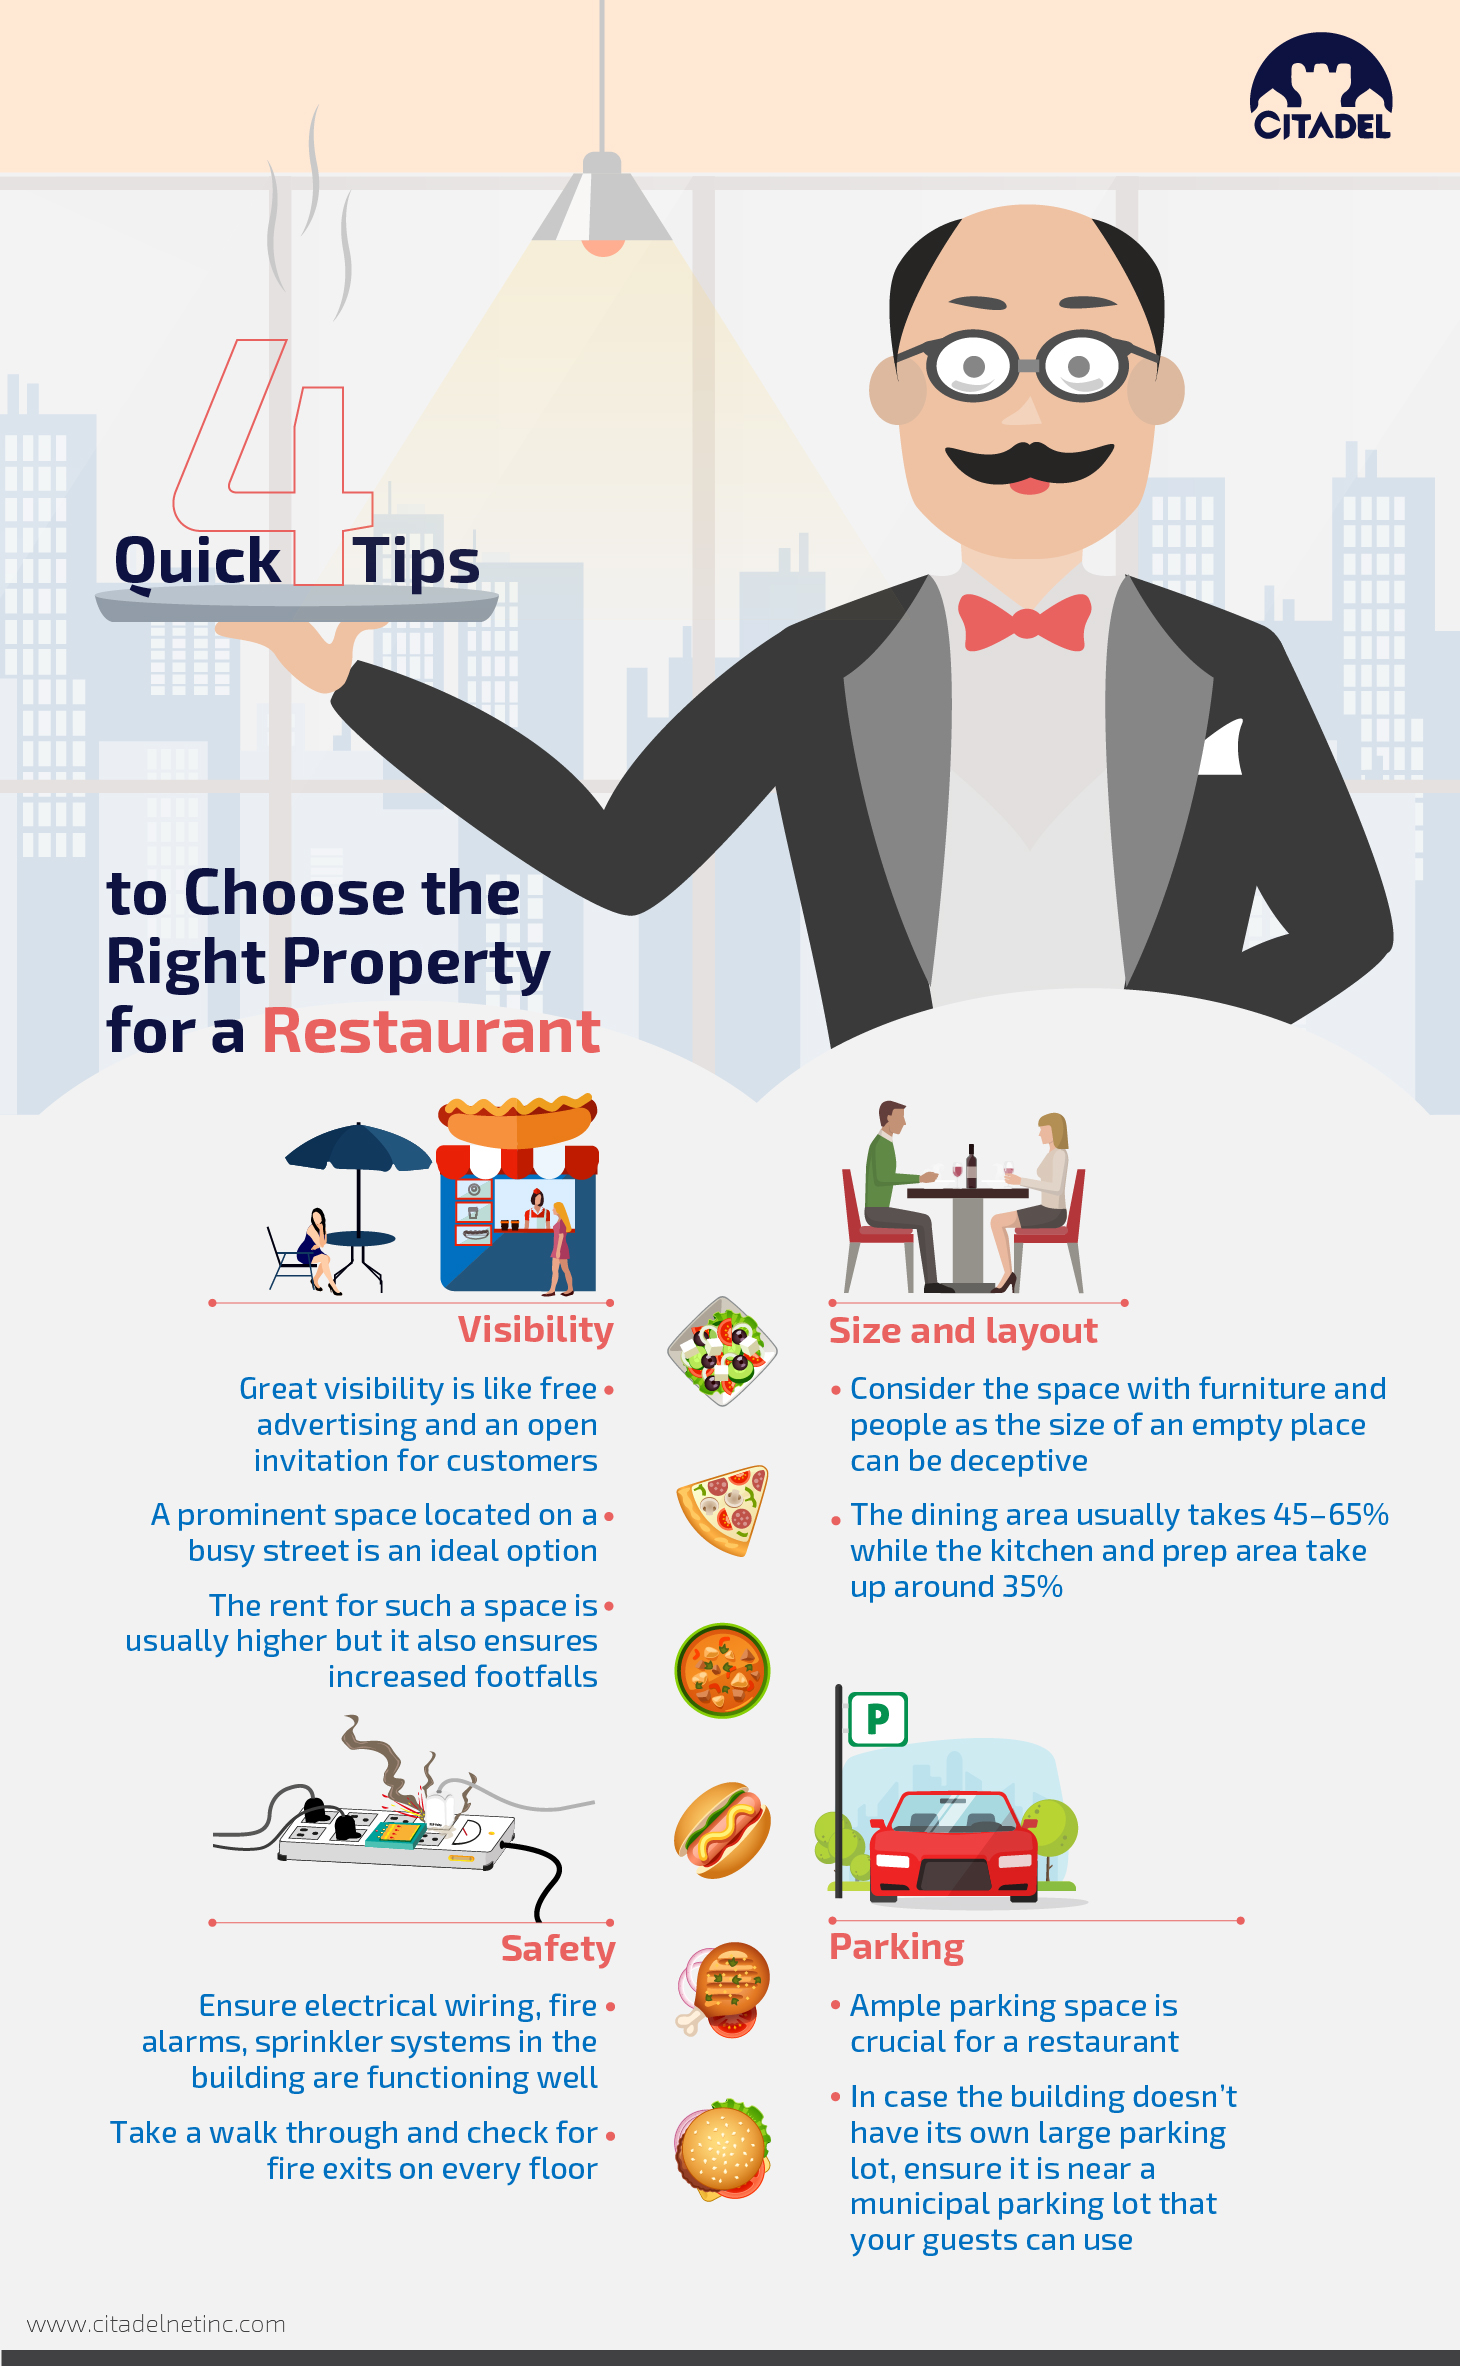 4 QUICK TIPS TO CHOOSE THE RIGHT PROPERTY FOR A RESTAURANT